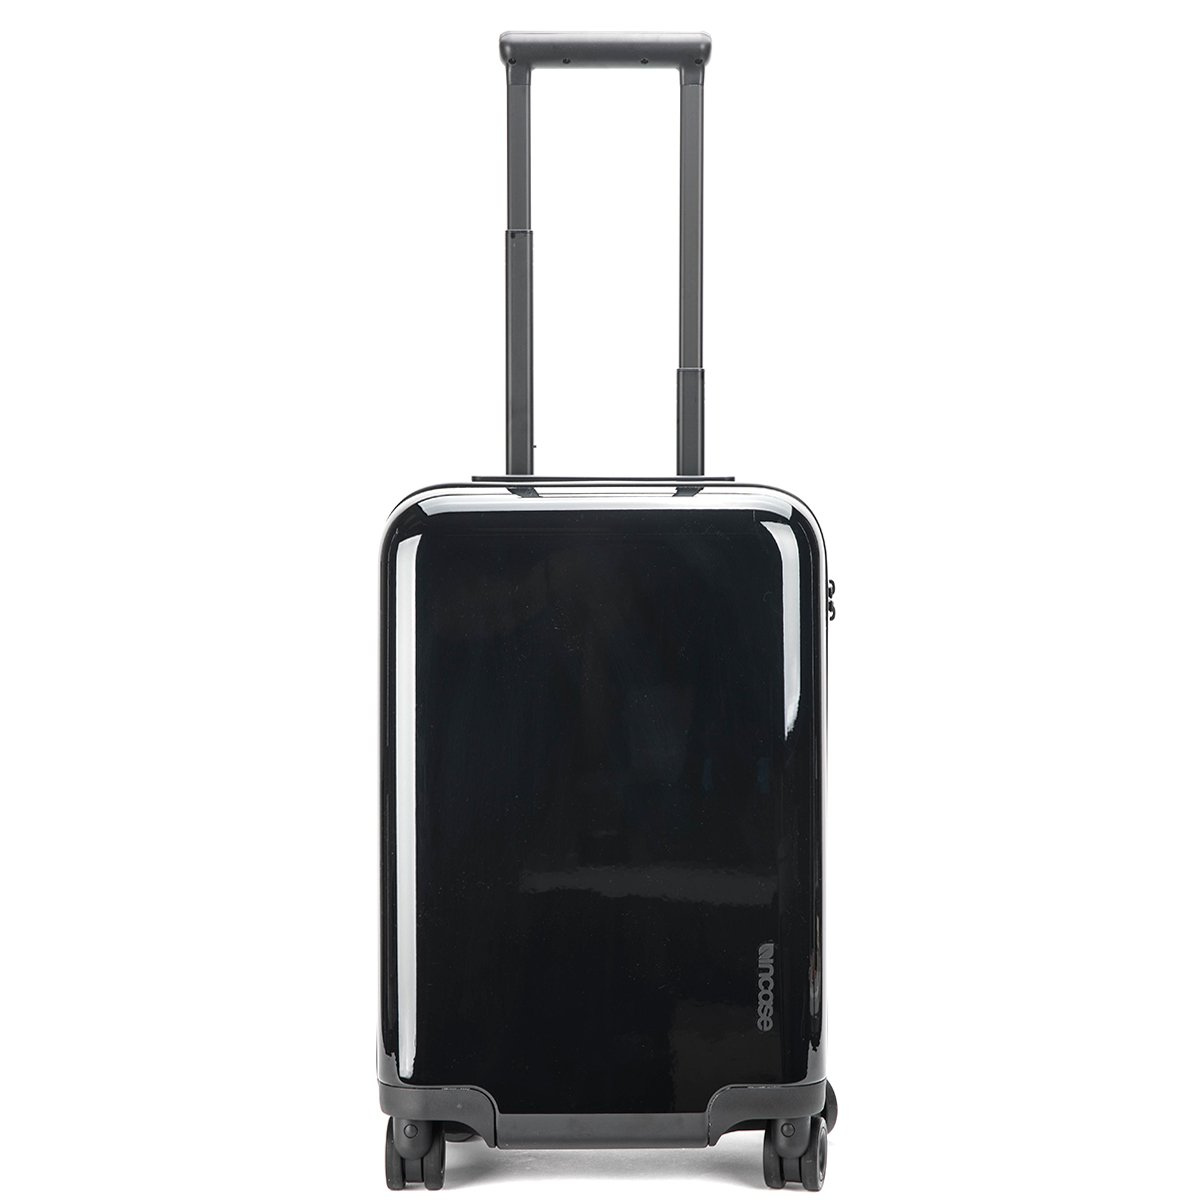 Incase Connected Travel Roller with USB-C Power INTR100295 (Black Shiny) by Incase